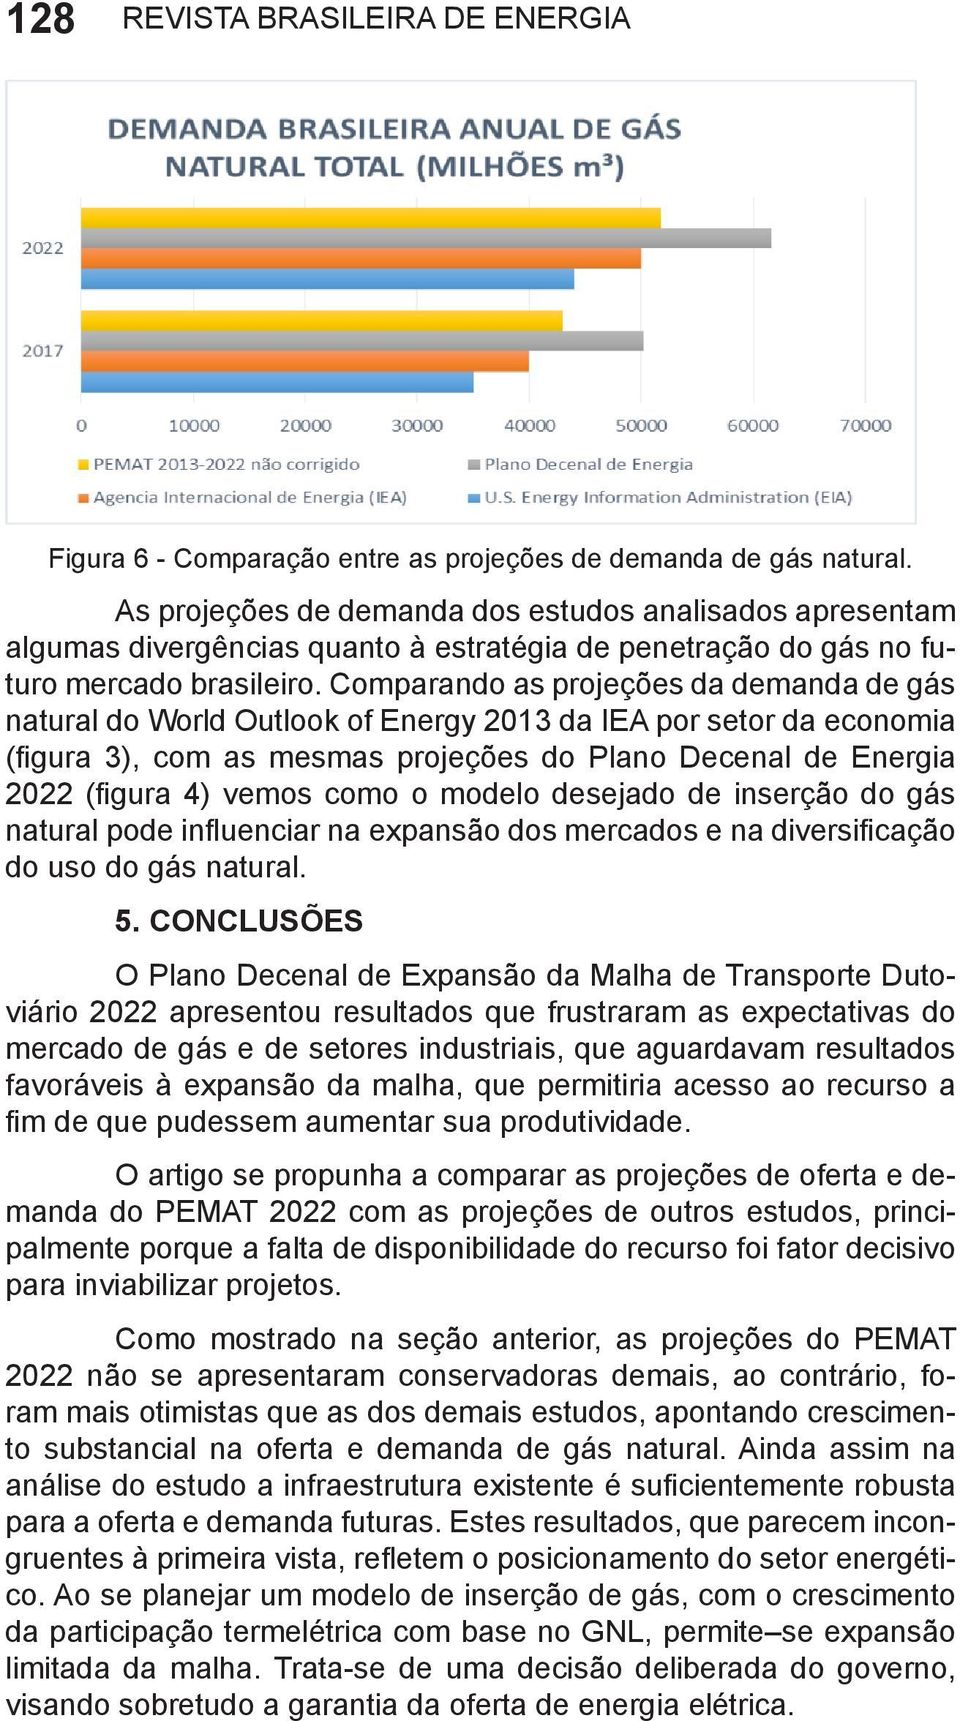 Comparando as projeções da demanda de gás natural do World Outlook of Energy 2013 da IEA por setor da economia (figura 3), com as mesmas projeções do Plano Decenal de Energia 2022 (figura 4) vemos